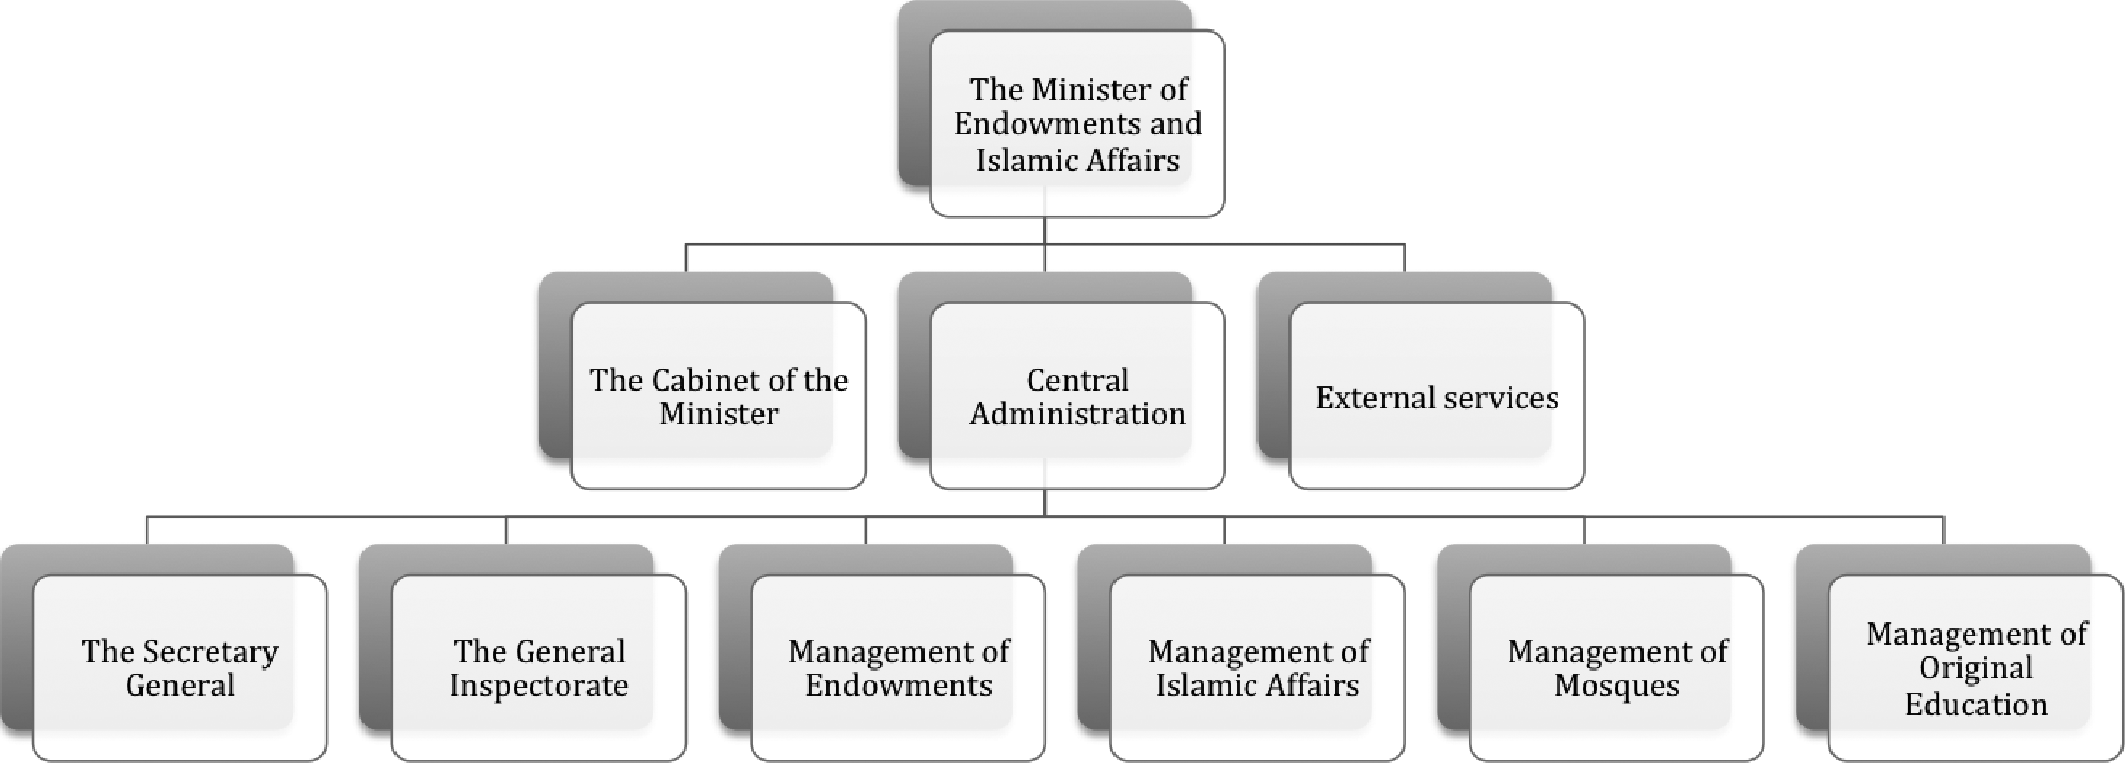 Reshaping Islam (Part I) - Bureaucratizing Islam